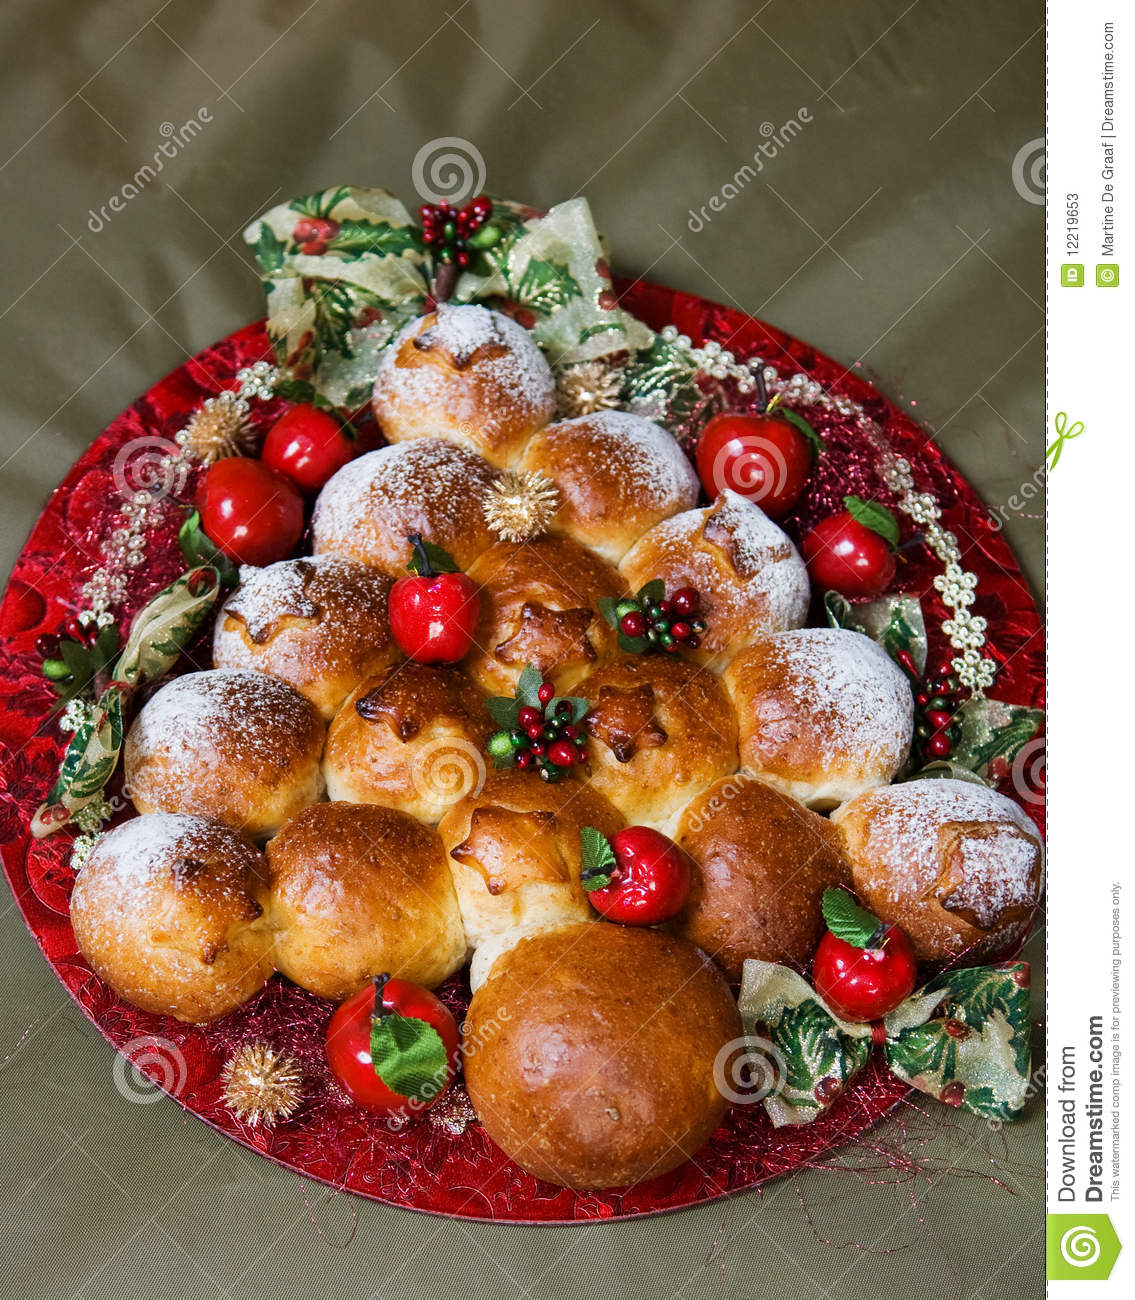 Christmas Bread Rolls Stock Image. Image Of December